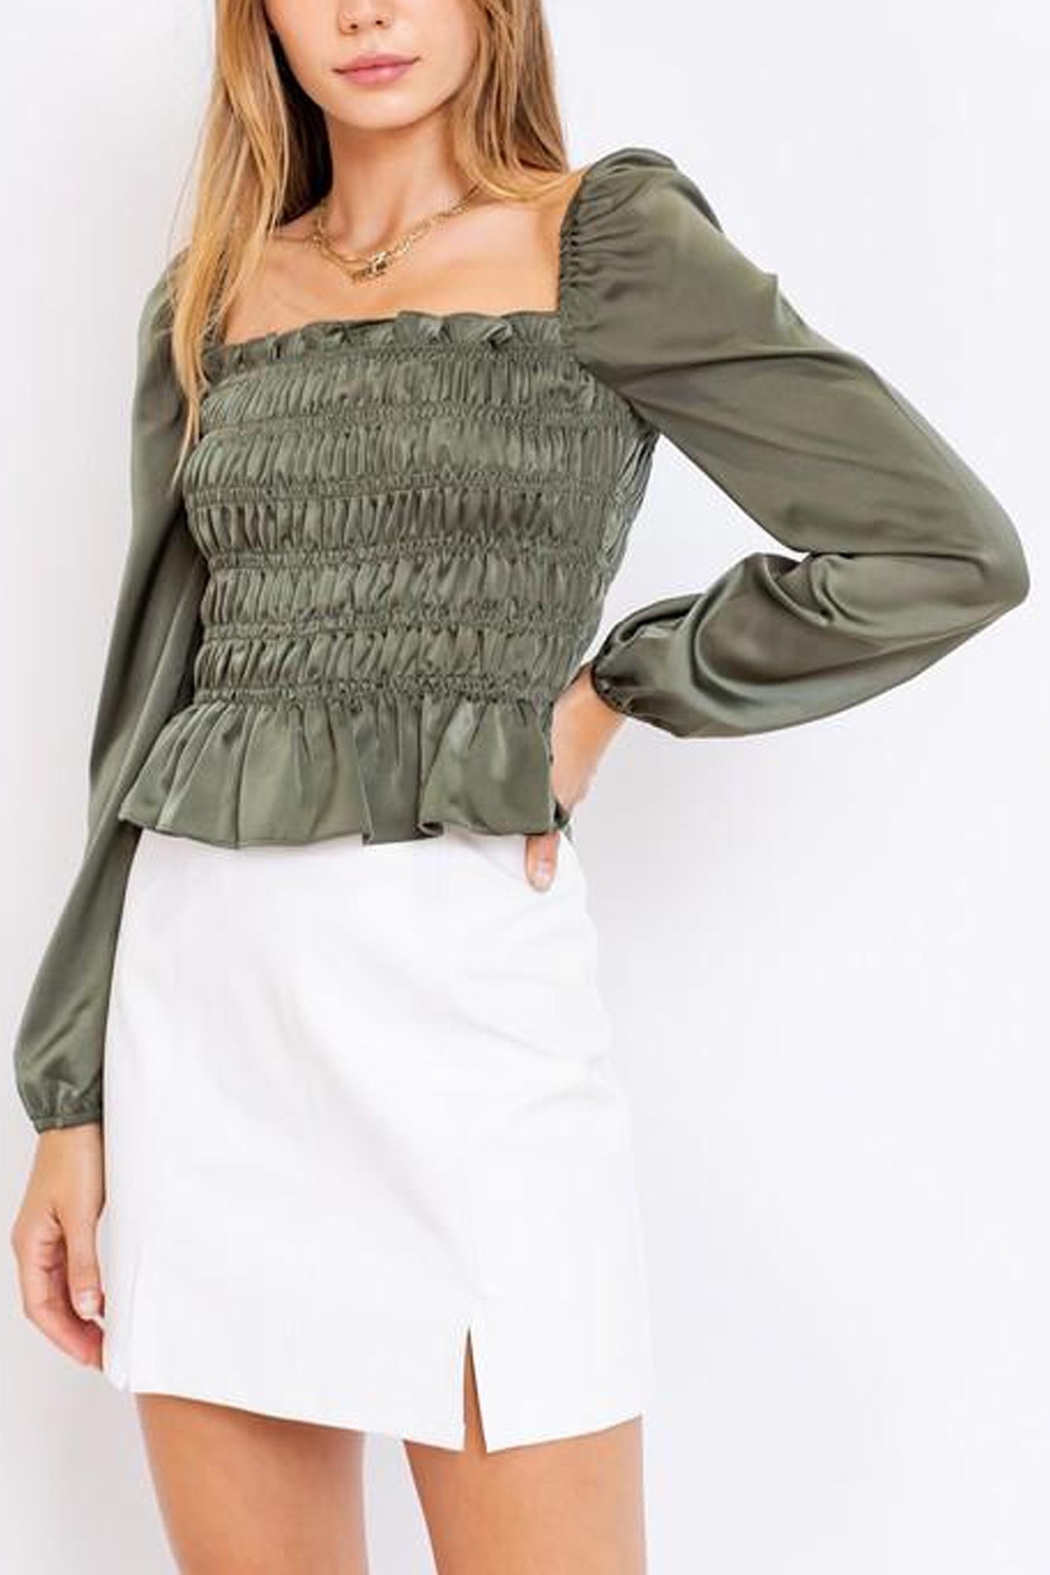 Le Lis Puff-Sleeve Square-Neck Top - Main Image